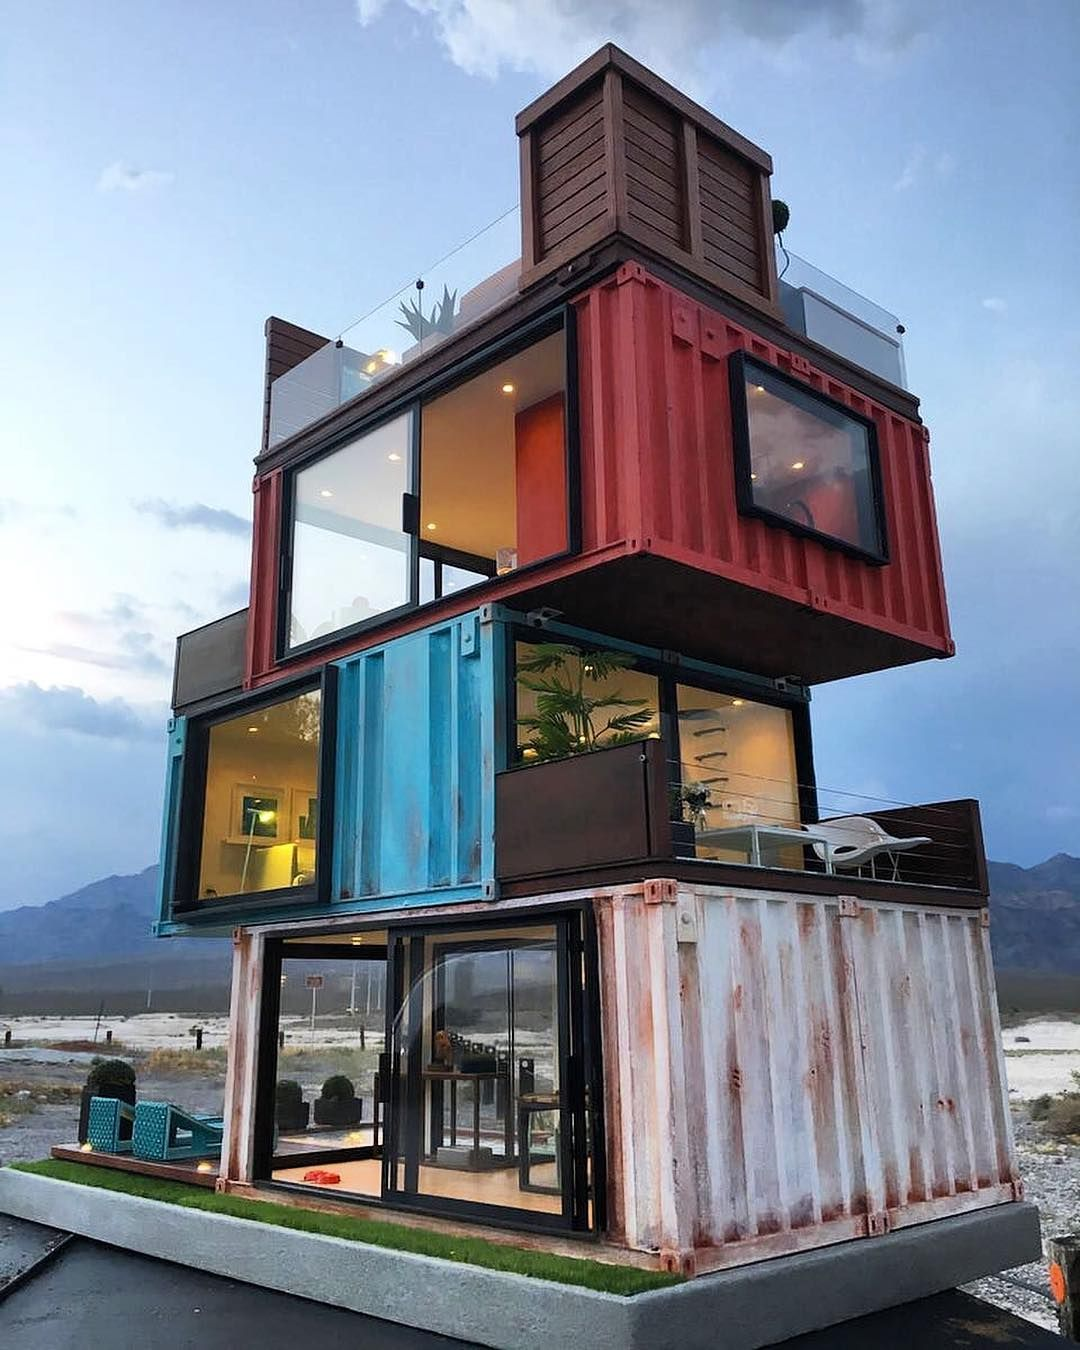 Container Haus Leipzig Stacked Containers By Cargotecture Architecture On Designboom